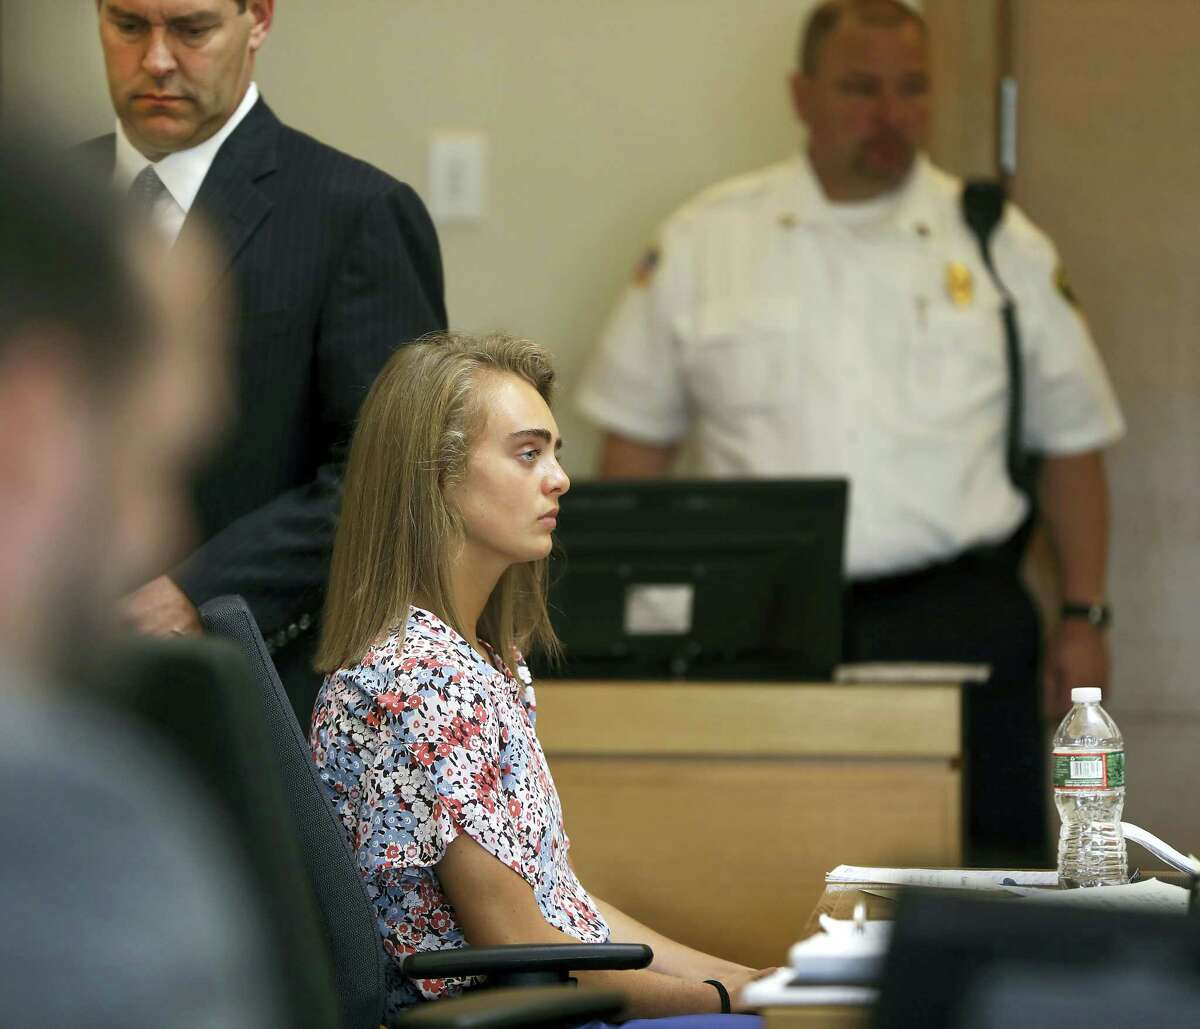 After a sidebar with Judge Lawrence Moniz (not seen) attorney Joe Cataldo, left, returns to the defense table, with his client Michelle Carter during her trial at Taunton Juvenile Court in Taunton, Mass., Tuesday, June 13, 2017. Carter is charged with involuntary manslaughter for encouraging Conrad Roy III to kill himself in July 2014.